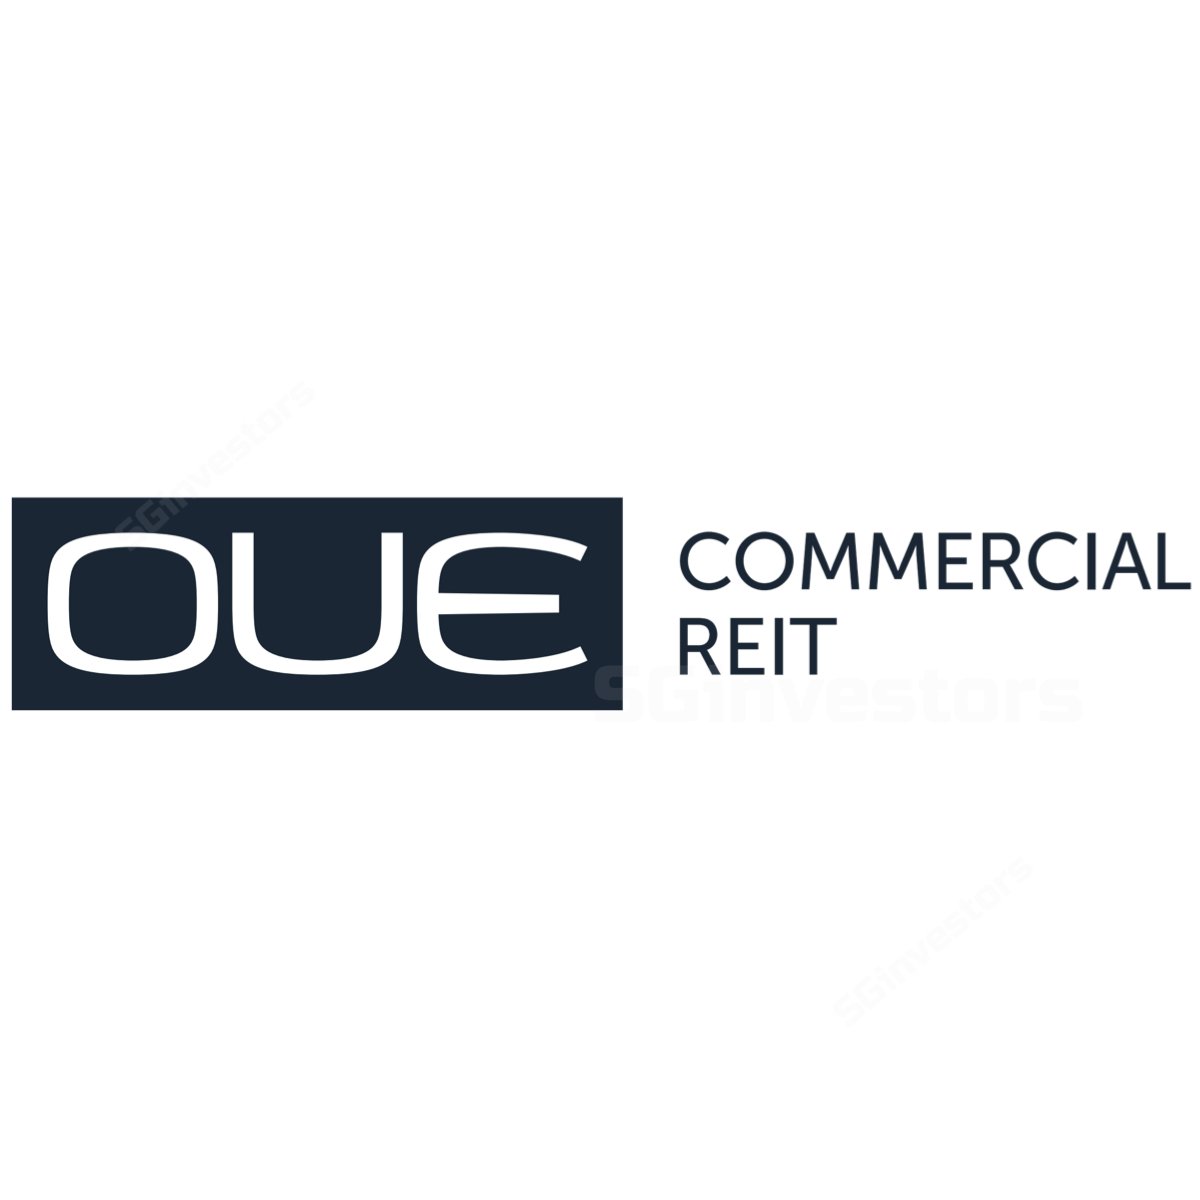 OUE Commercial REIT - DBS Vickers 2017-01-27: Finding the right partner at Bayfront